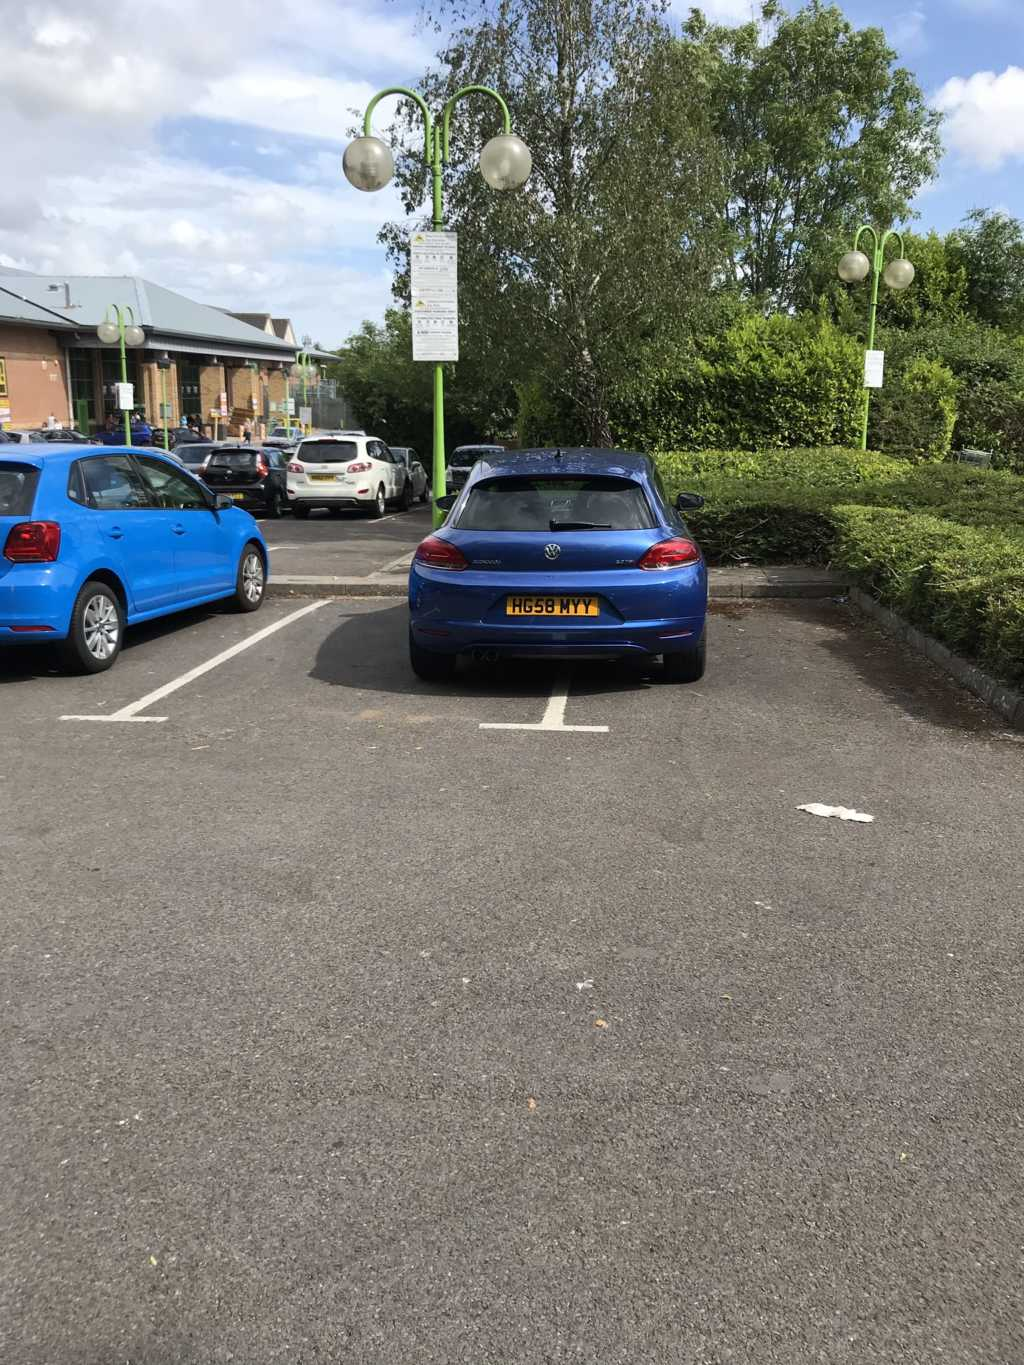 HG58 MYY is a Selfish Parker